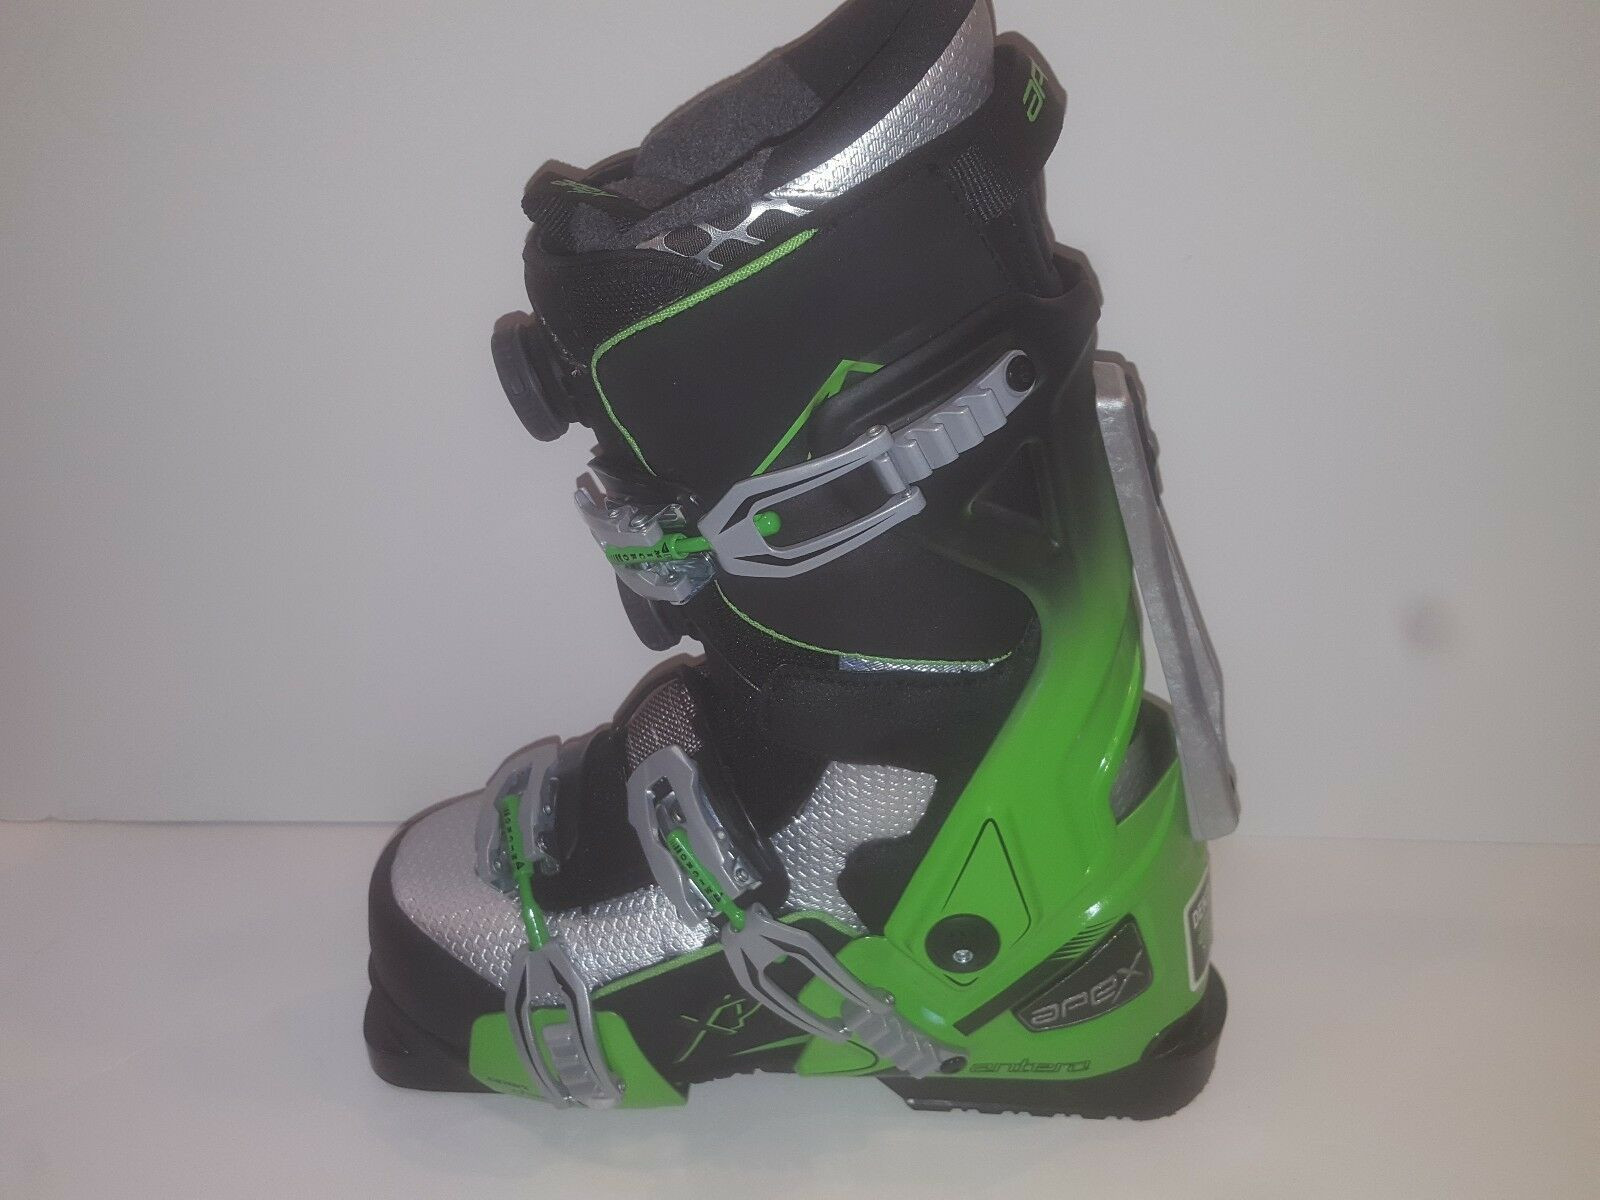 NEW 2019 APEX XP ANTERO MENS SKI BOOTS   FREE SHIPPING